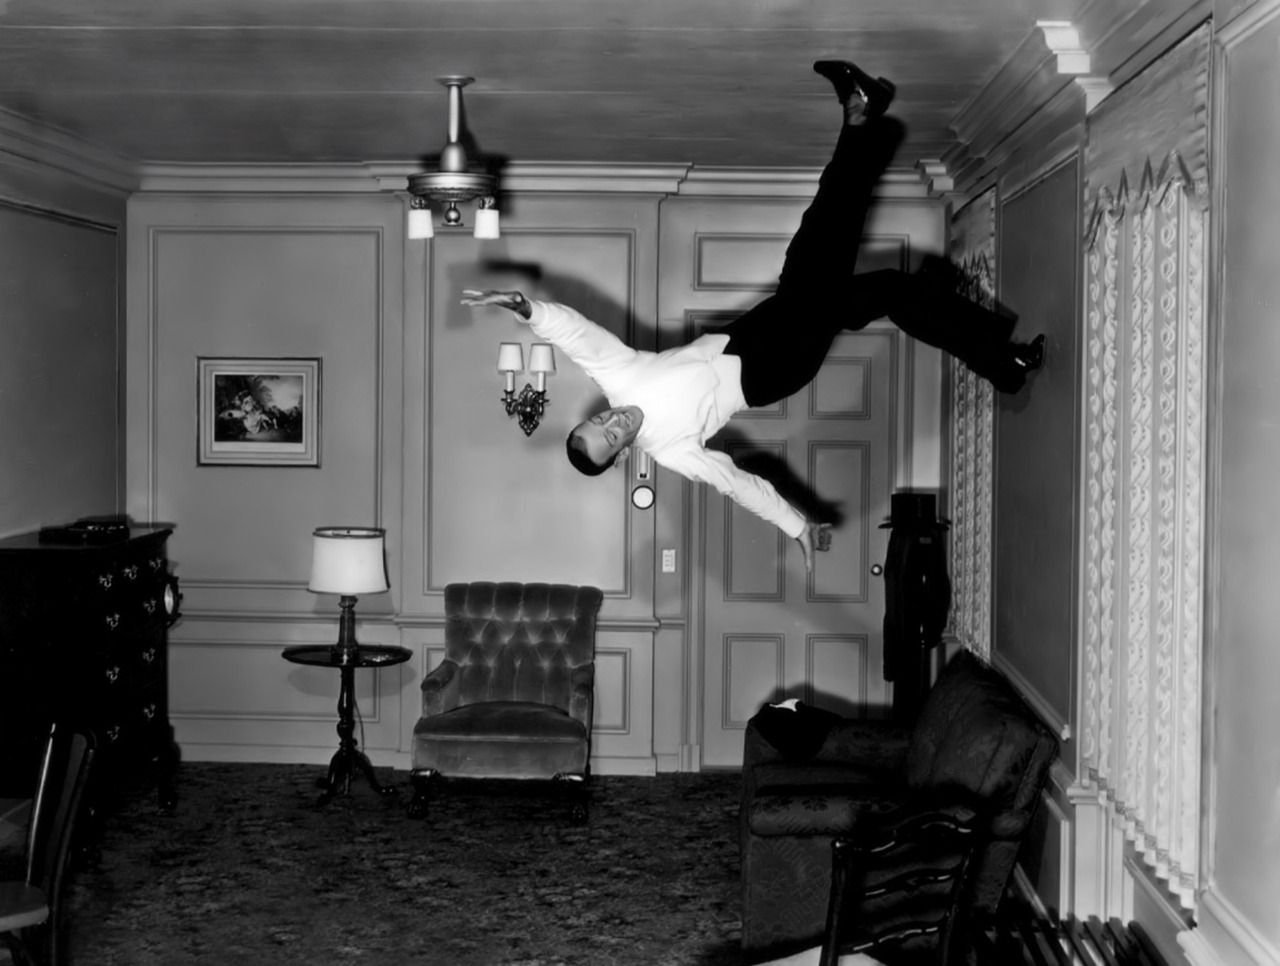 Fred Astaire Ceiling Dance Scene From  Movie Royal Wedding